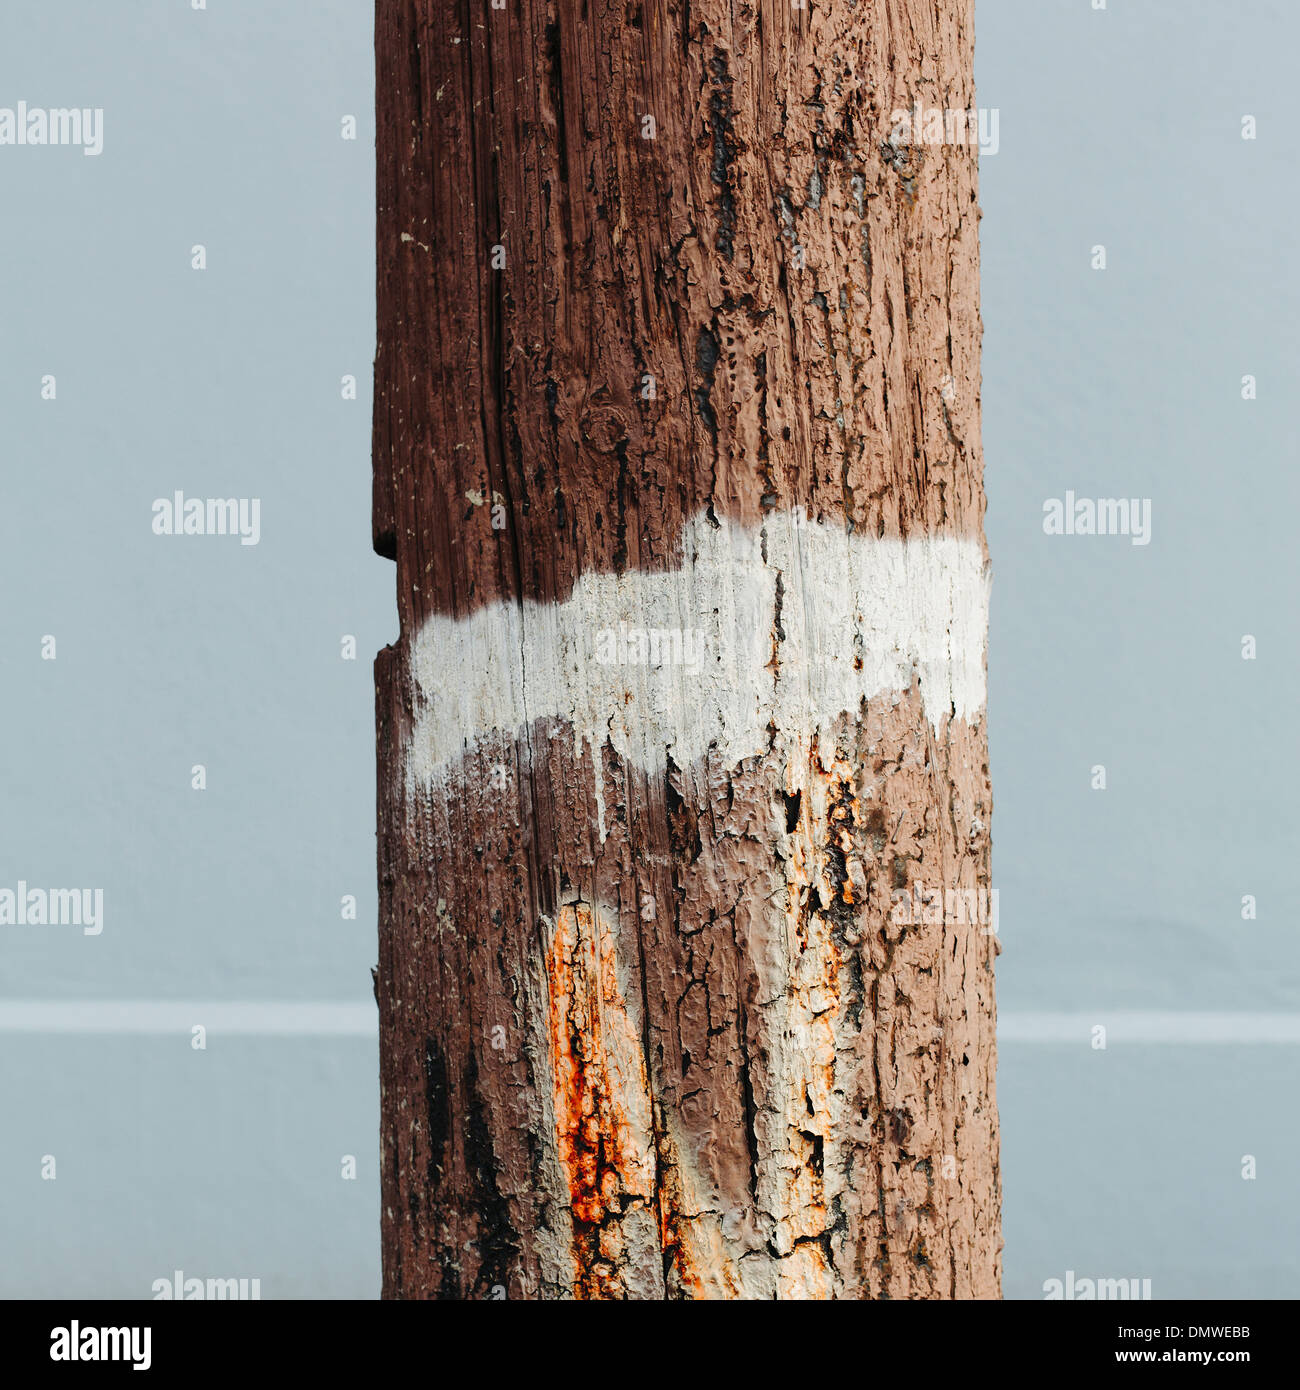 An old cracked and worn wooden telephone pole with a white painted strip around it. - Stock Image